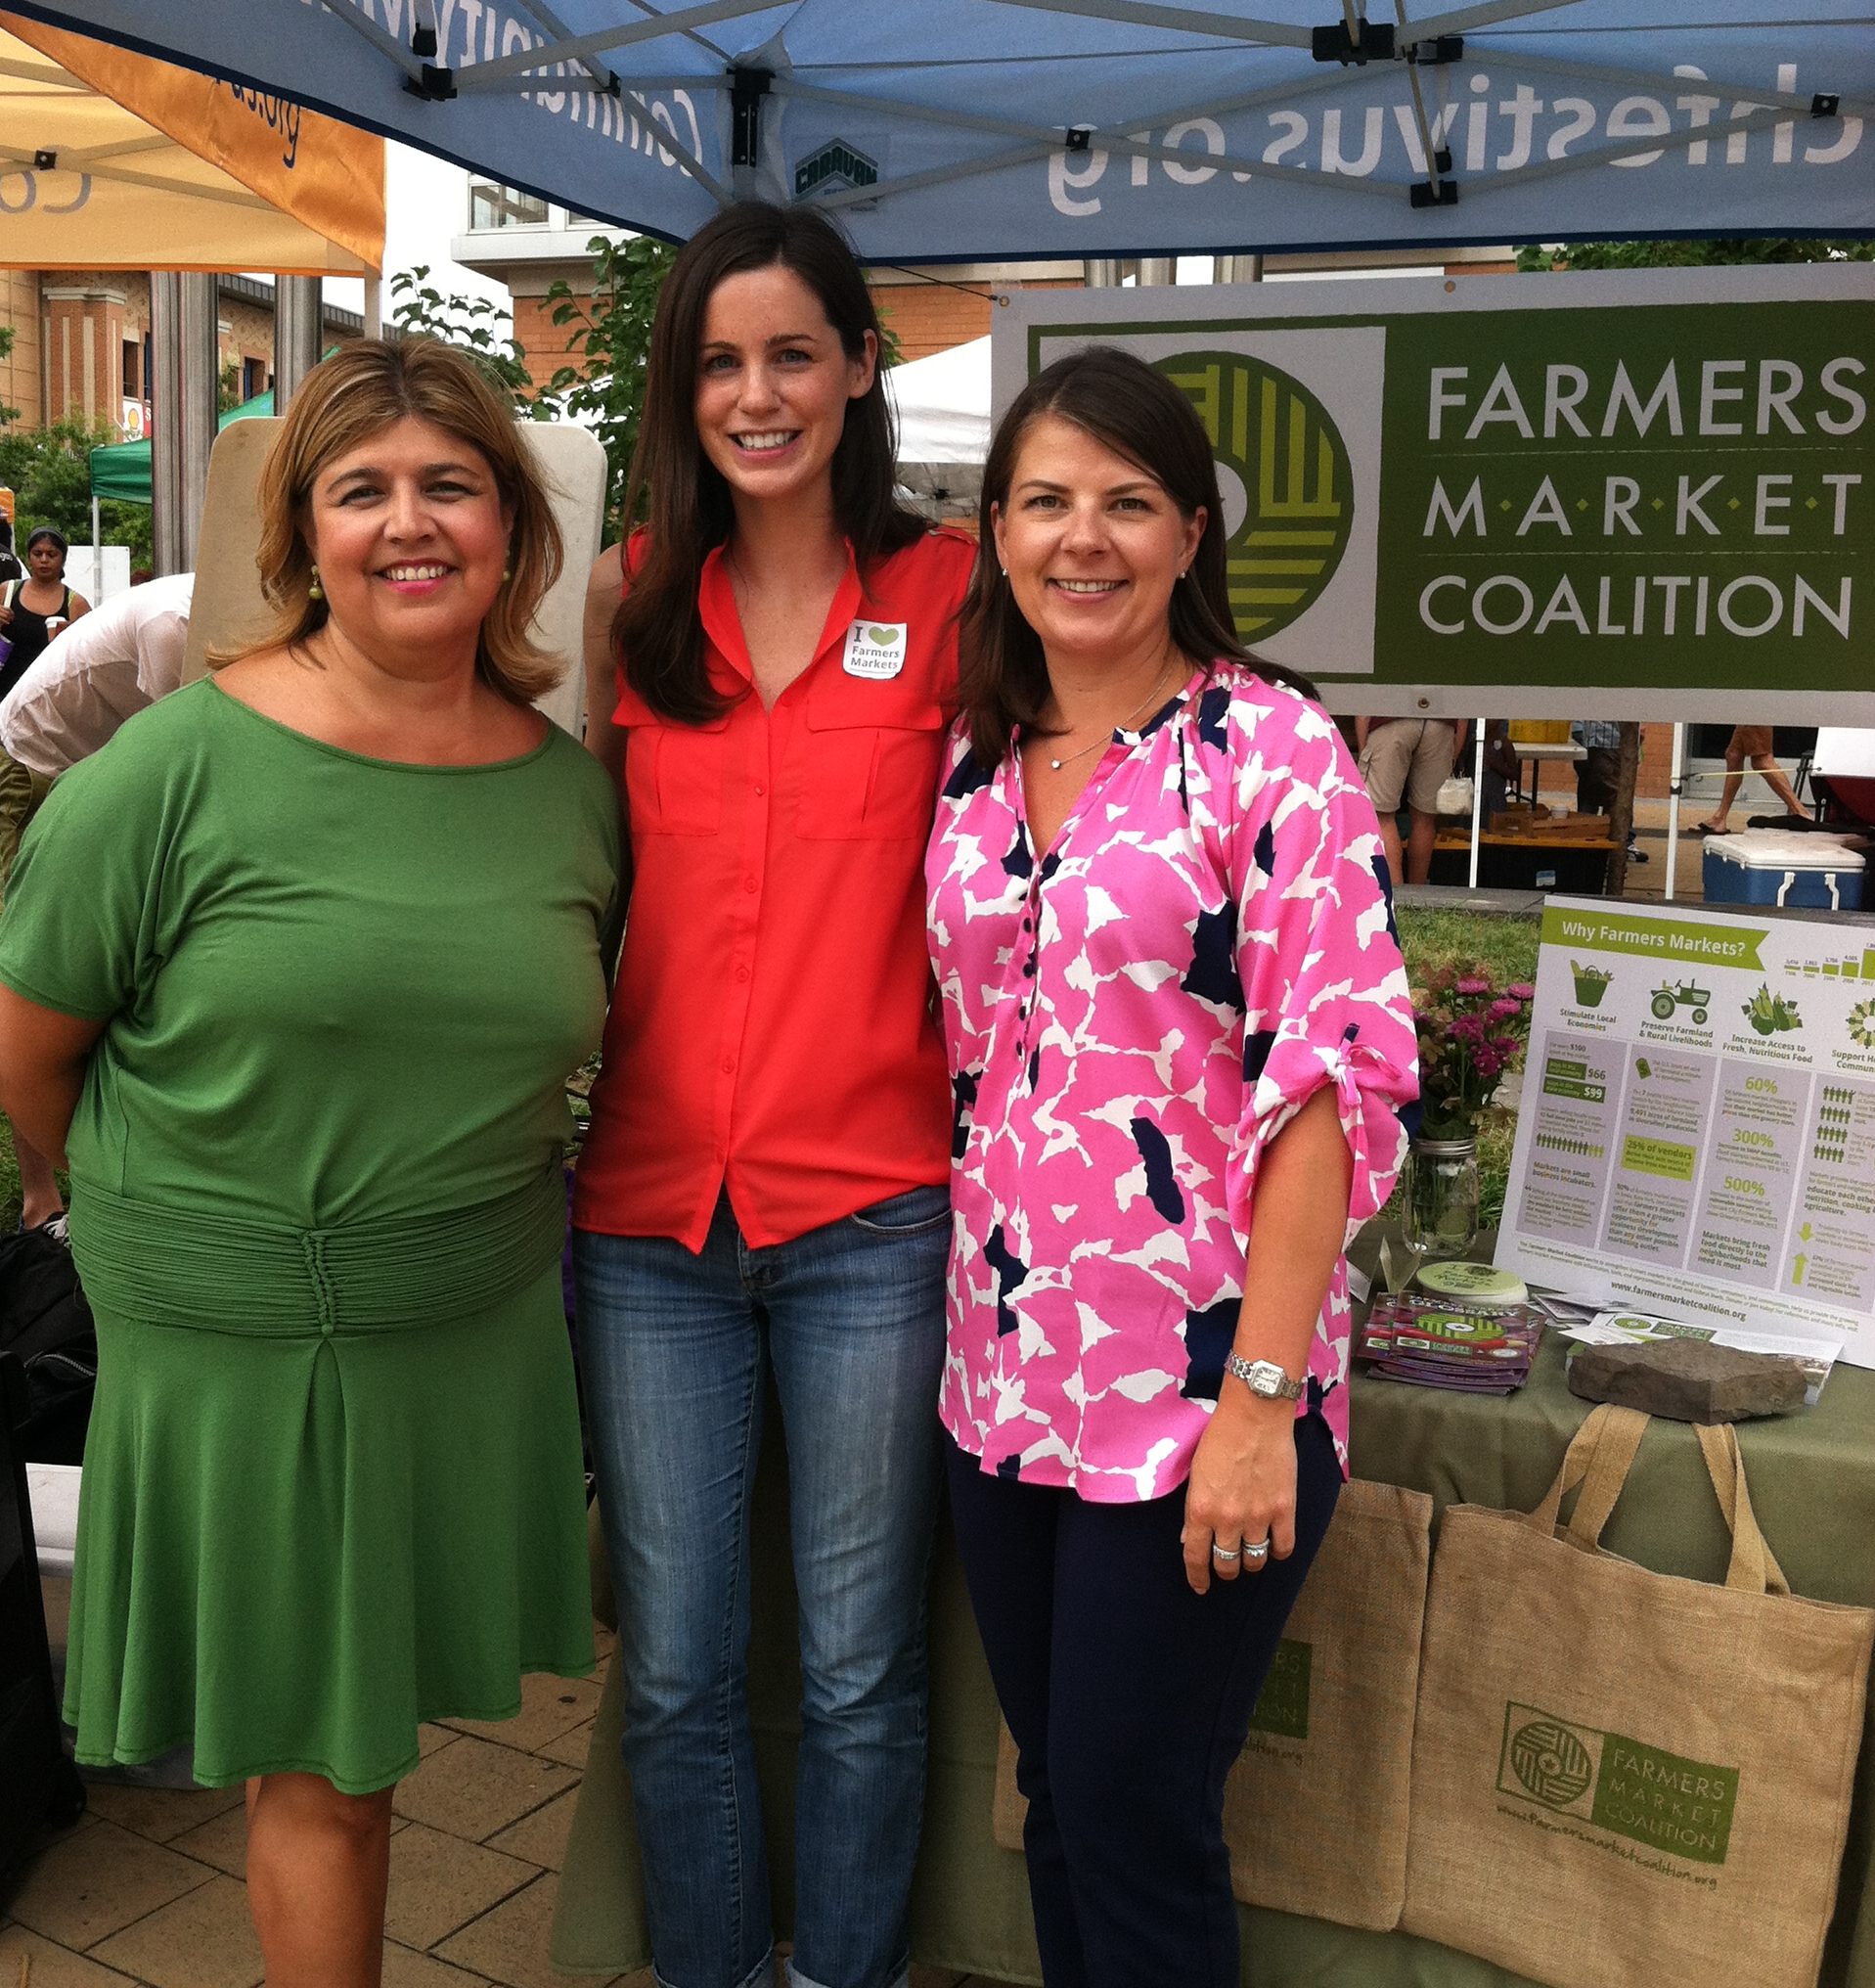 Celebrating the Many Benefits of Farmers Markets